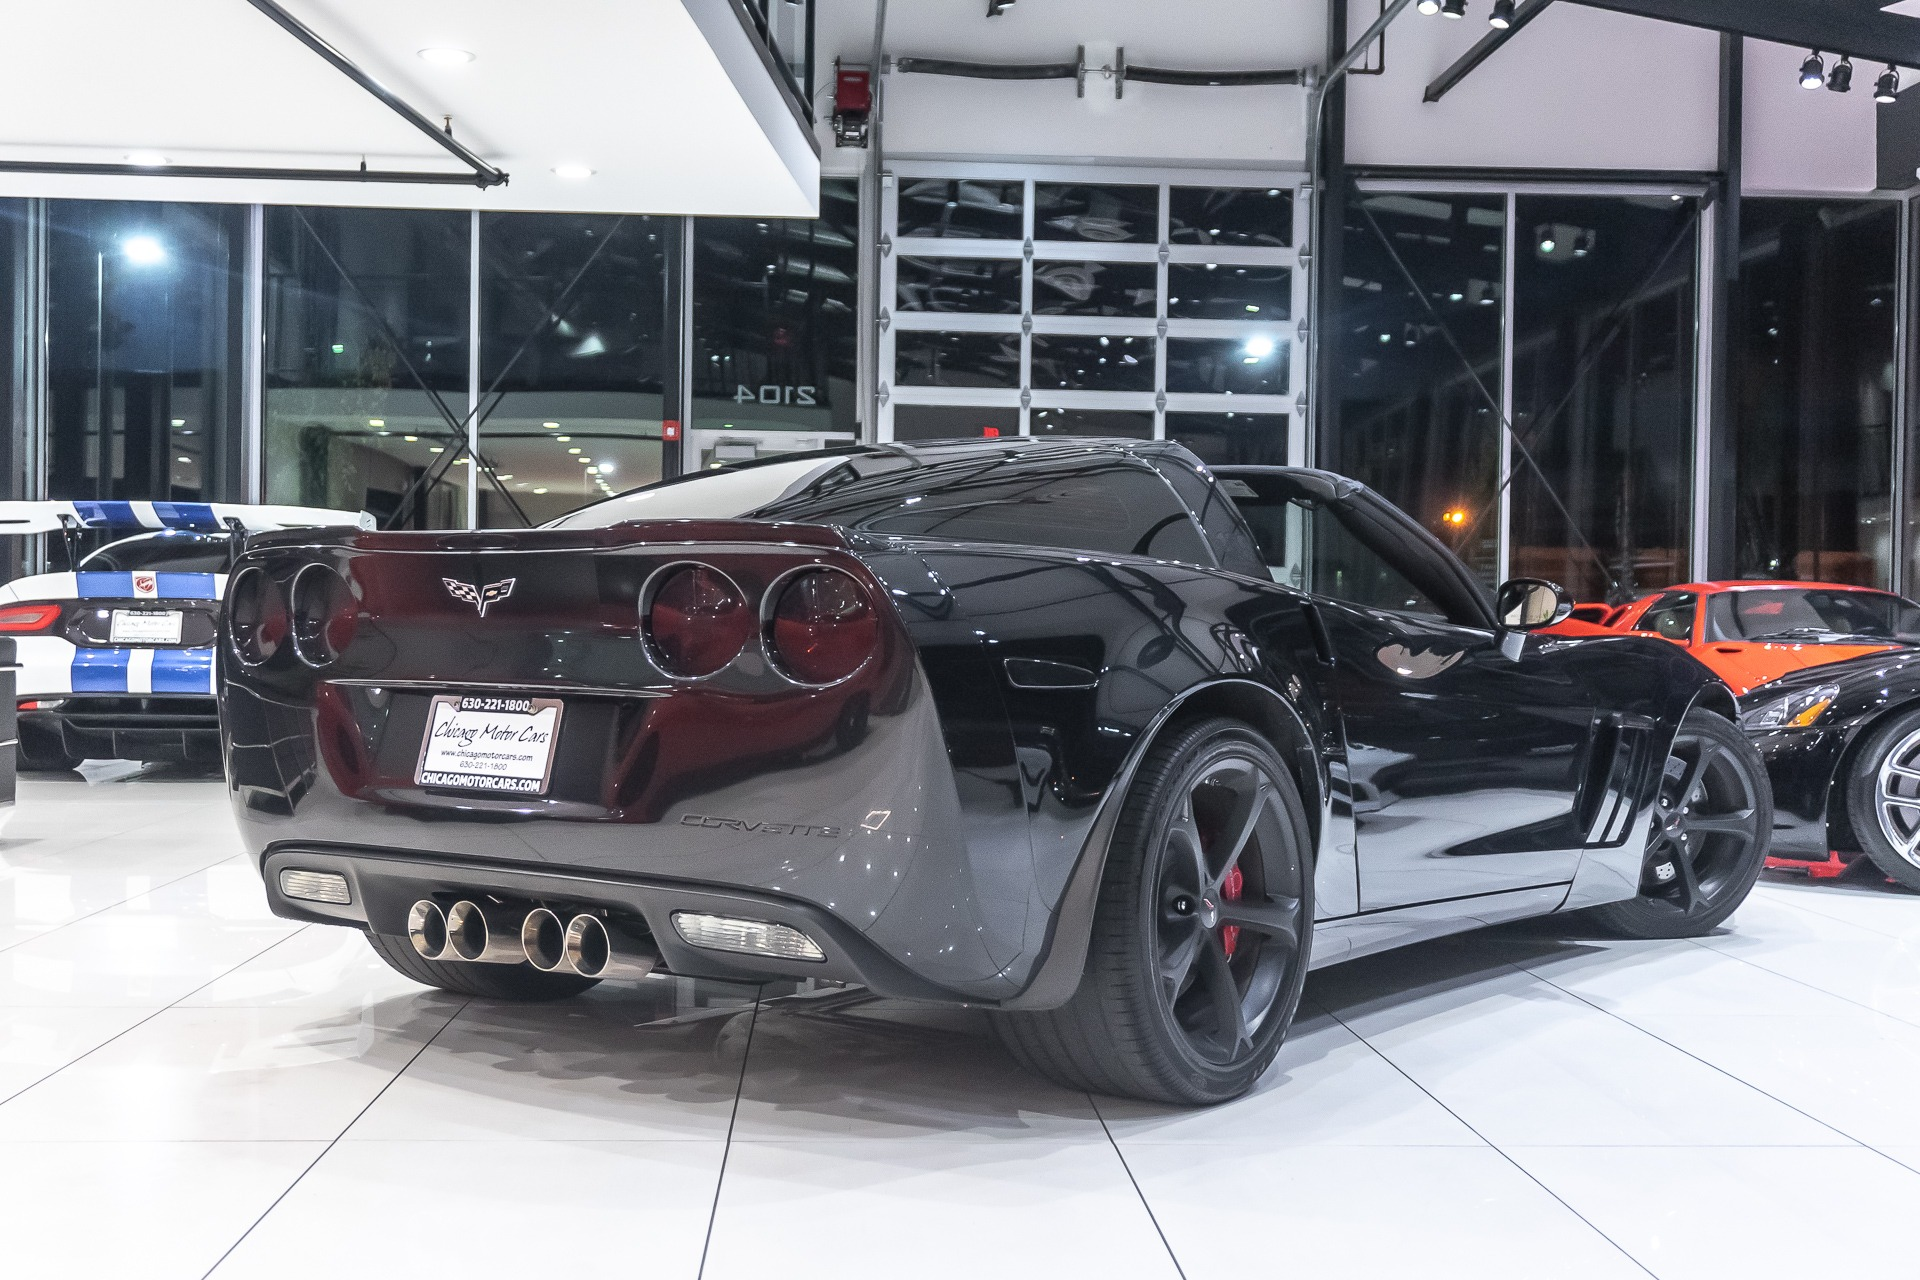 Used-2012-Chevrolet-Corvette-Z16-Grand-Sport-Centennial-Edition-Built-Procharged-700WHP